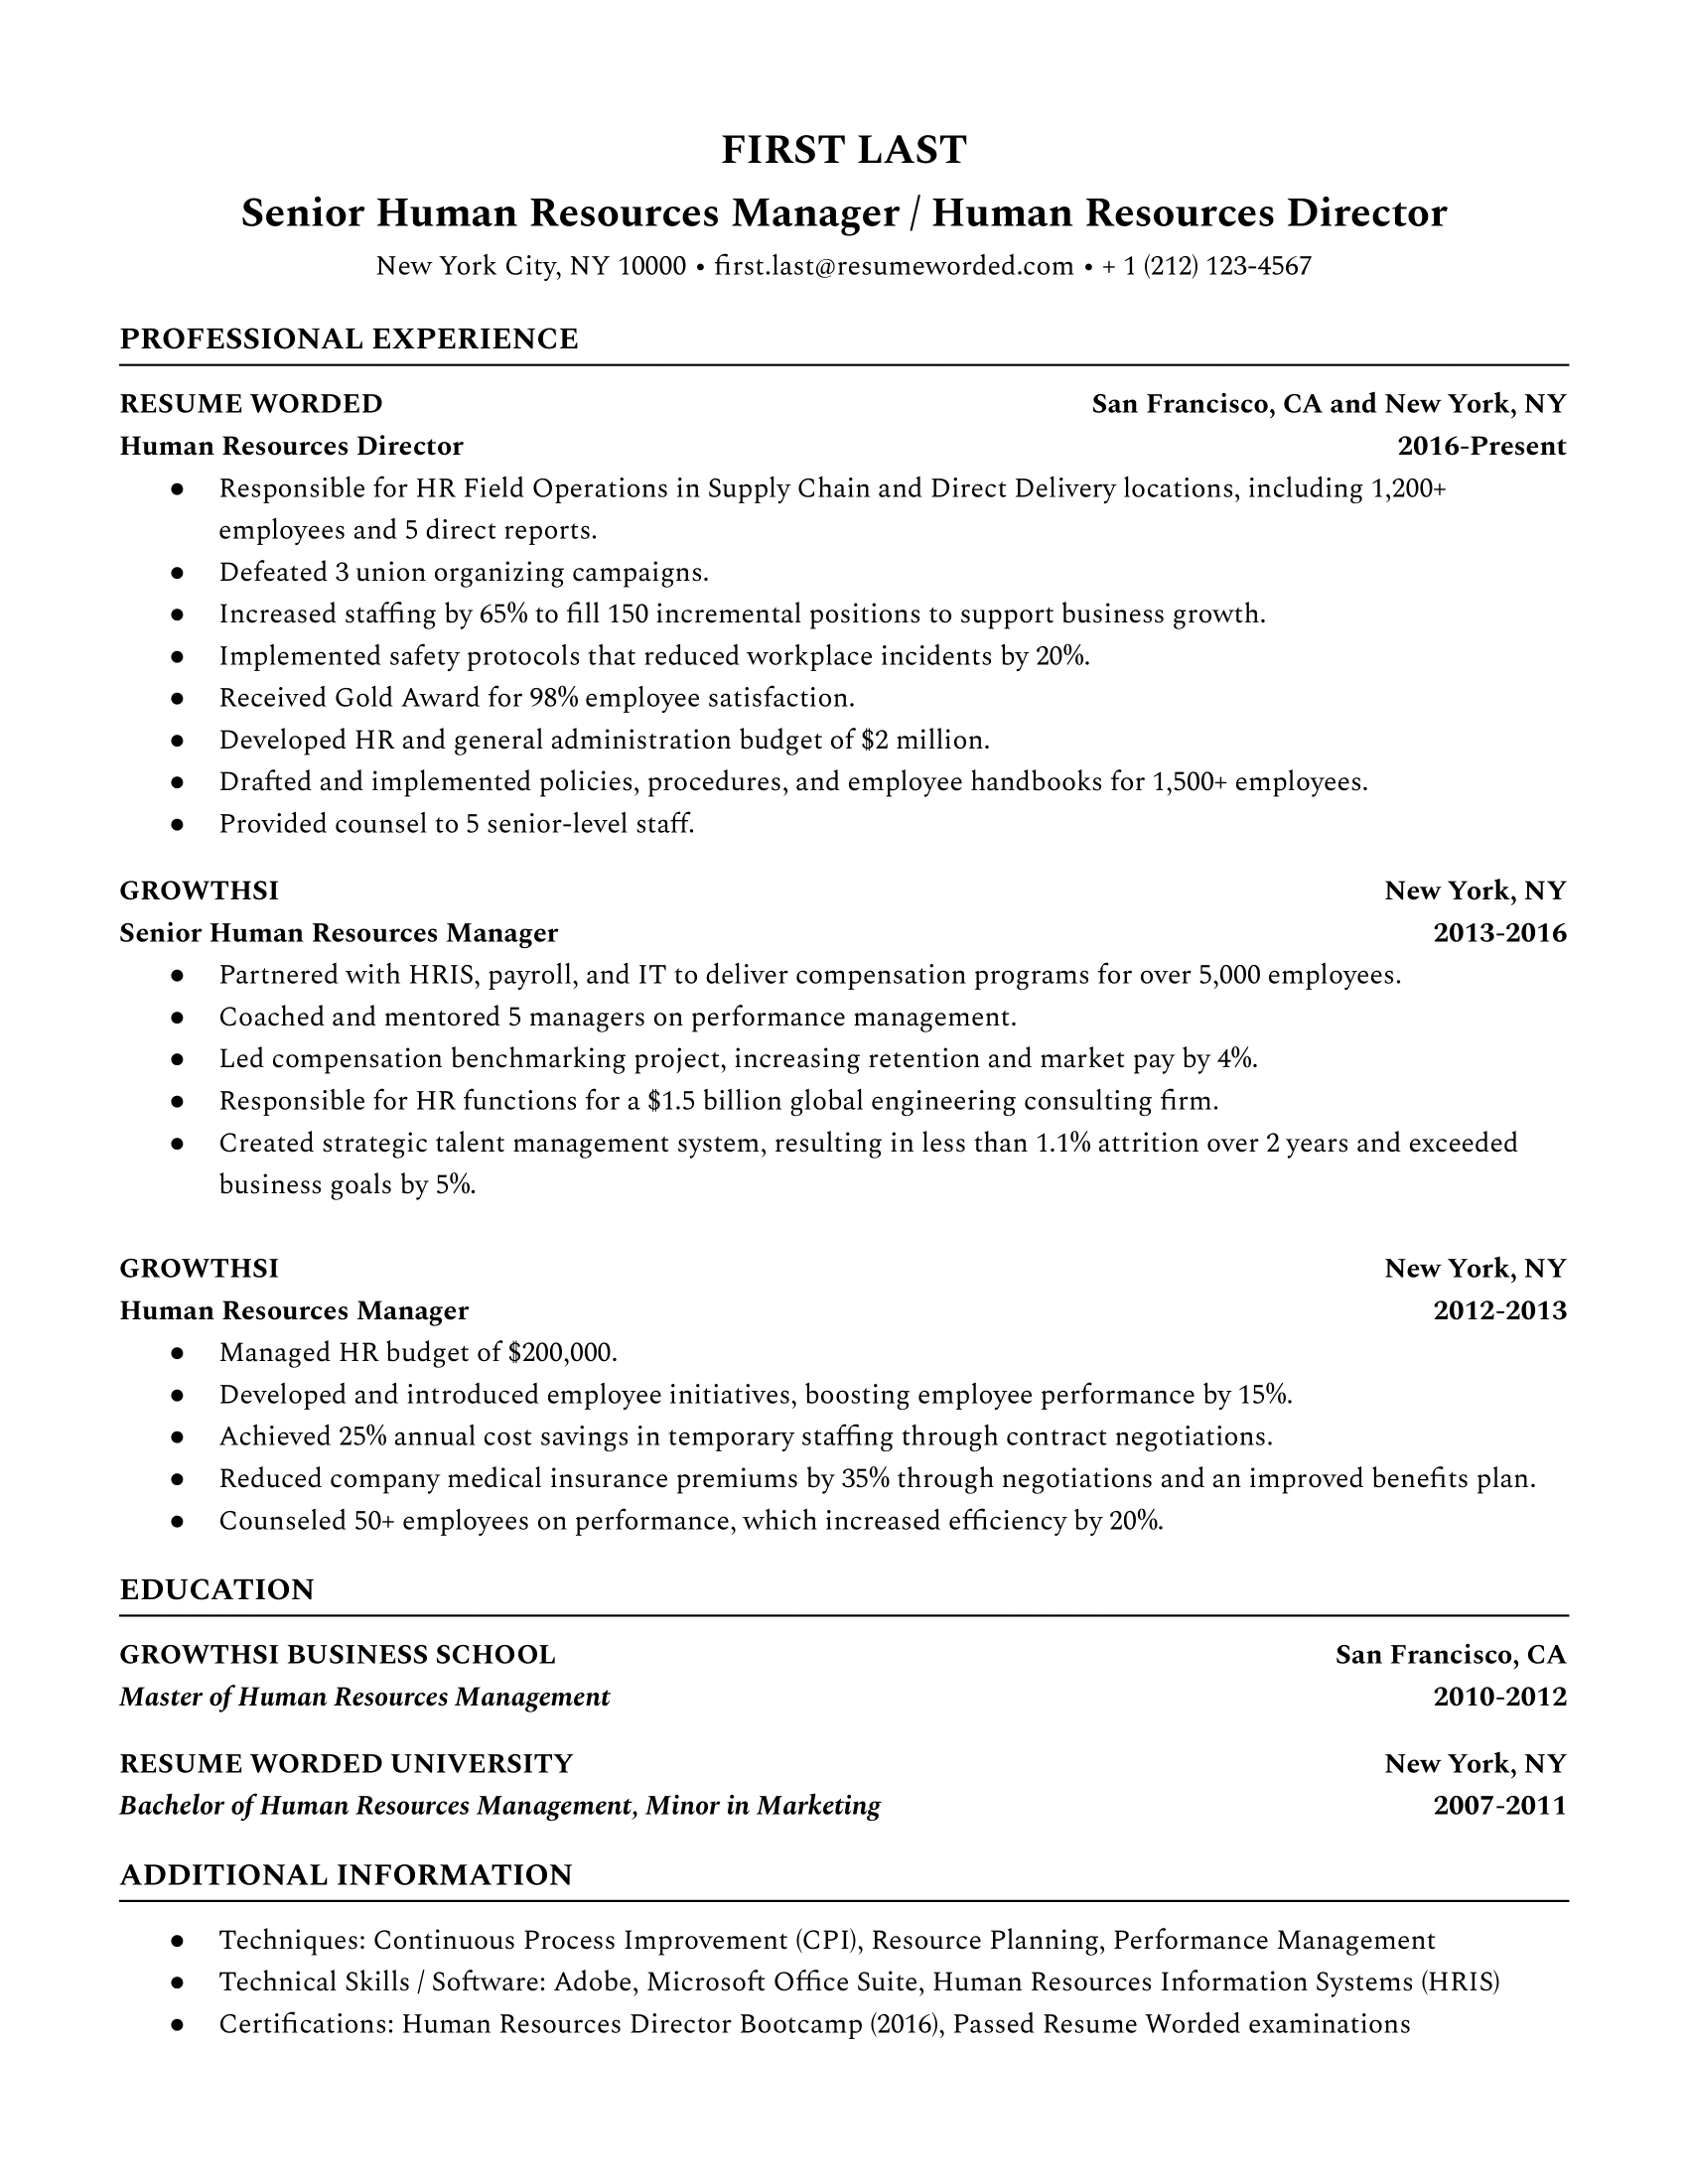 Senior Human Resources Manager/Human Resources Director Resume Sample